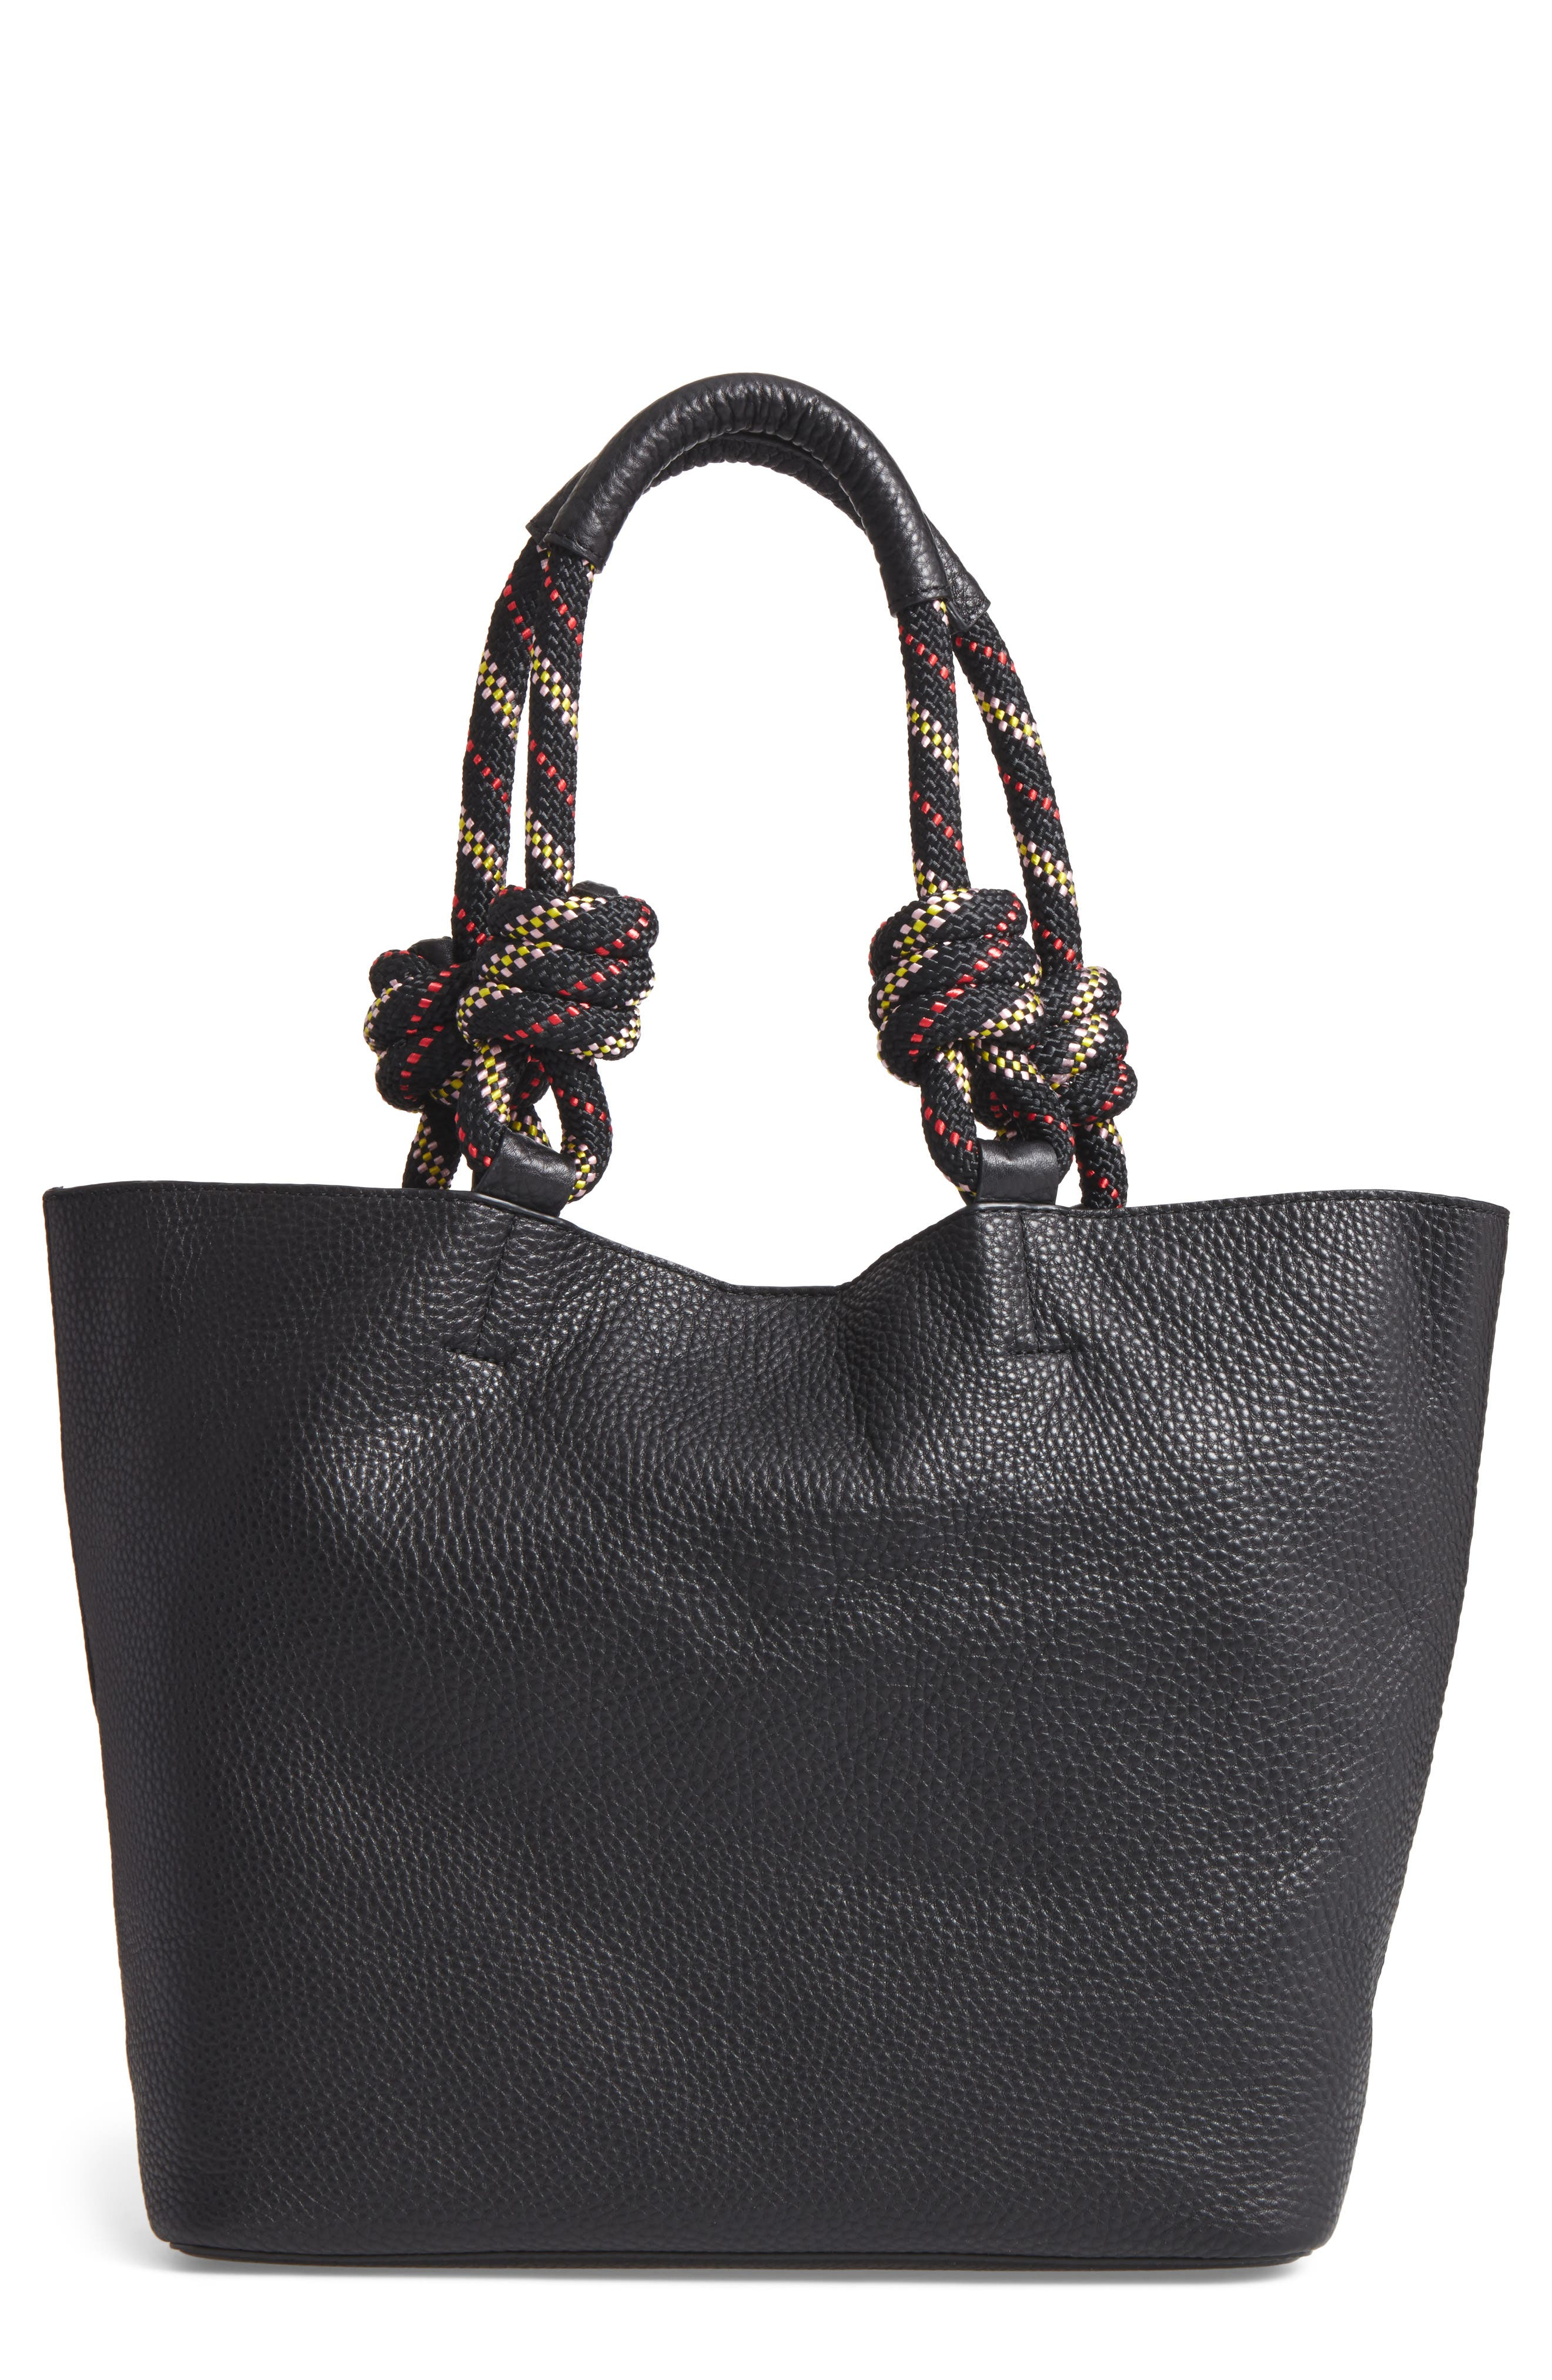 Rebecca Minkoff Climbing Rope Leather Tote